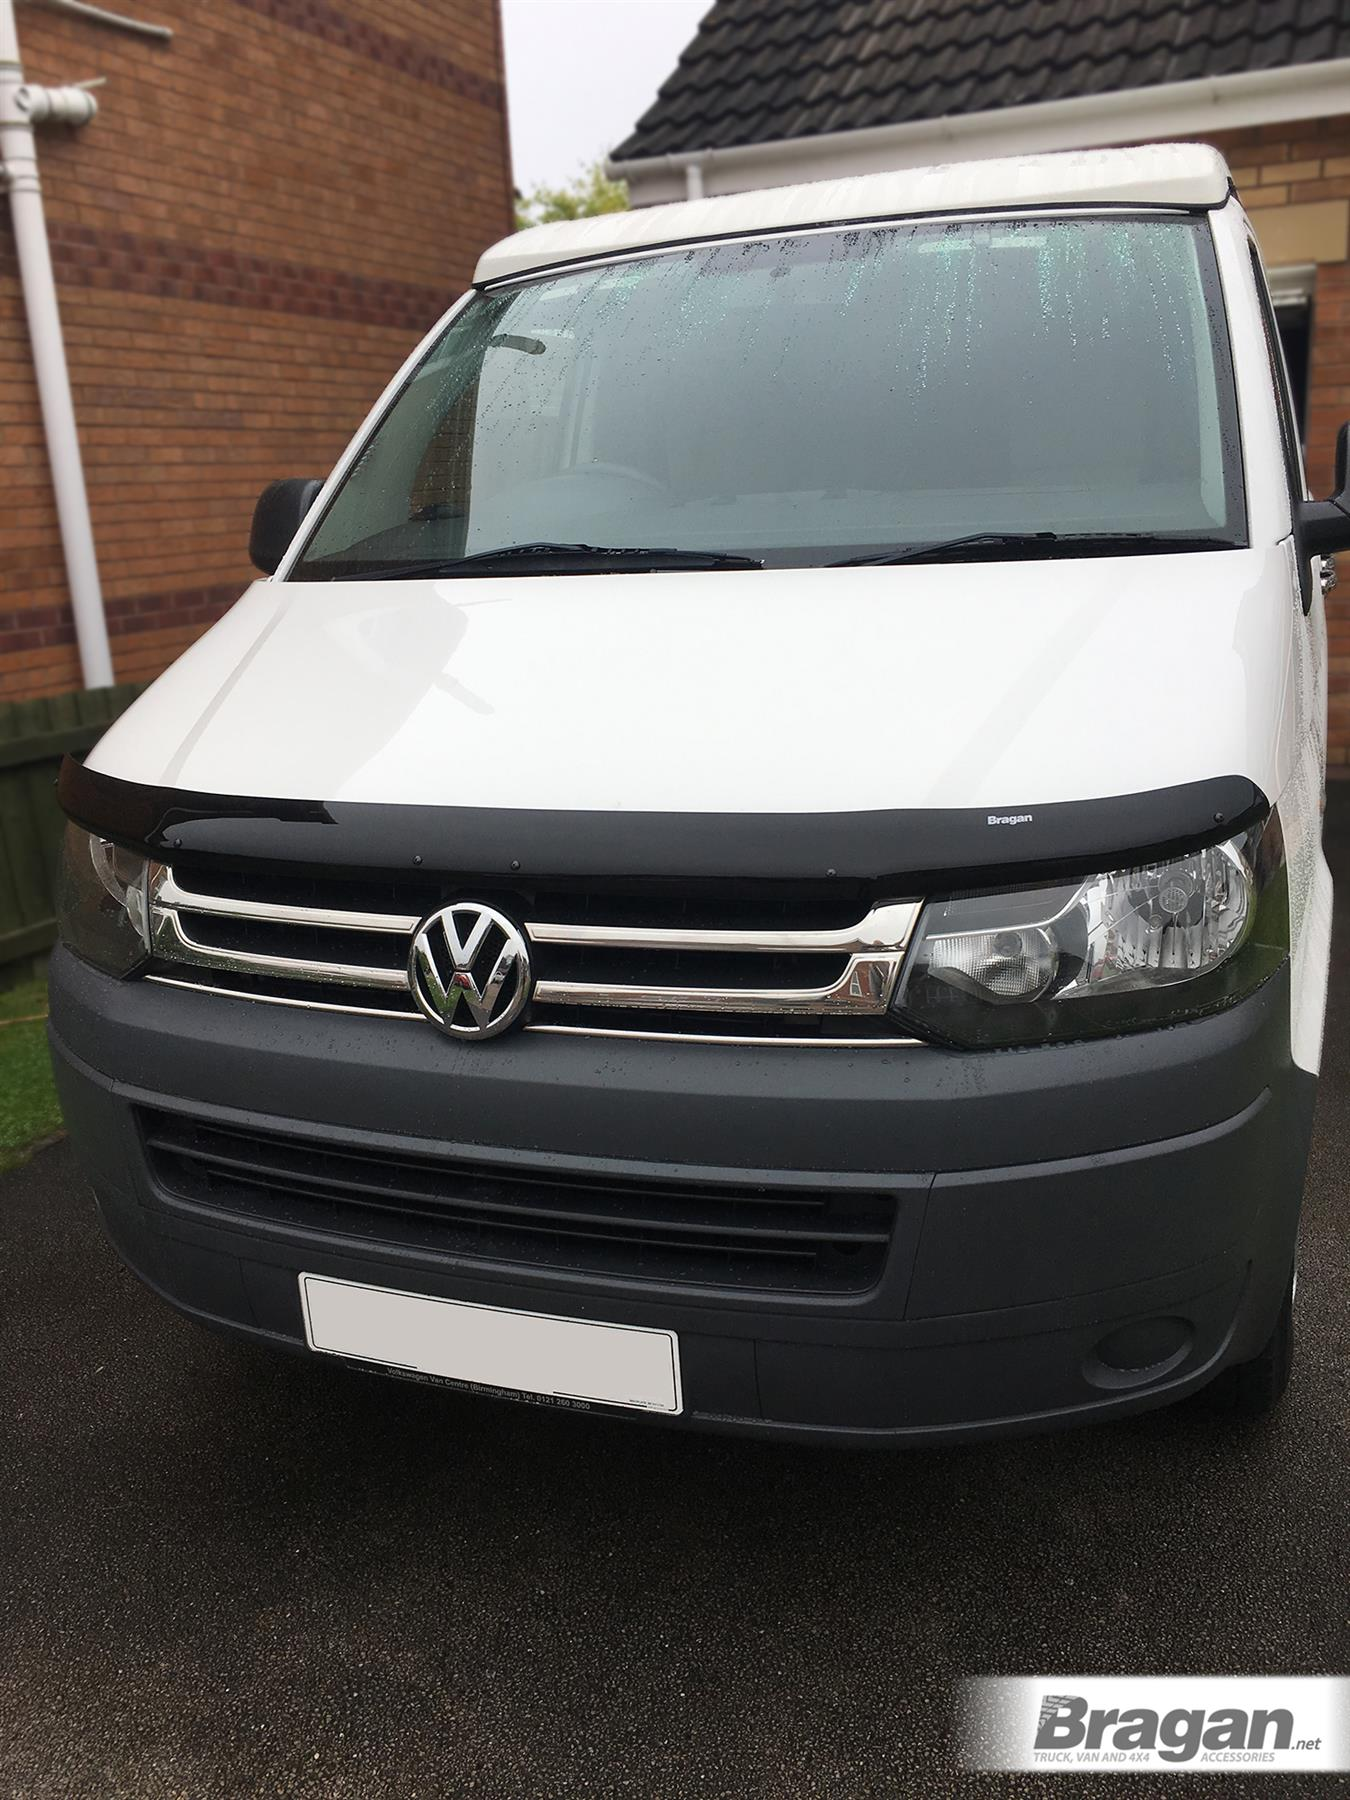 To Fit 2010-2015 Volkswagen Transporter T5 Smoked Acrylic Bonnet Guard Shield